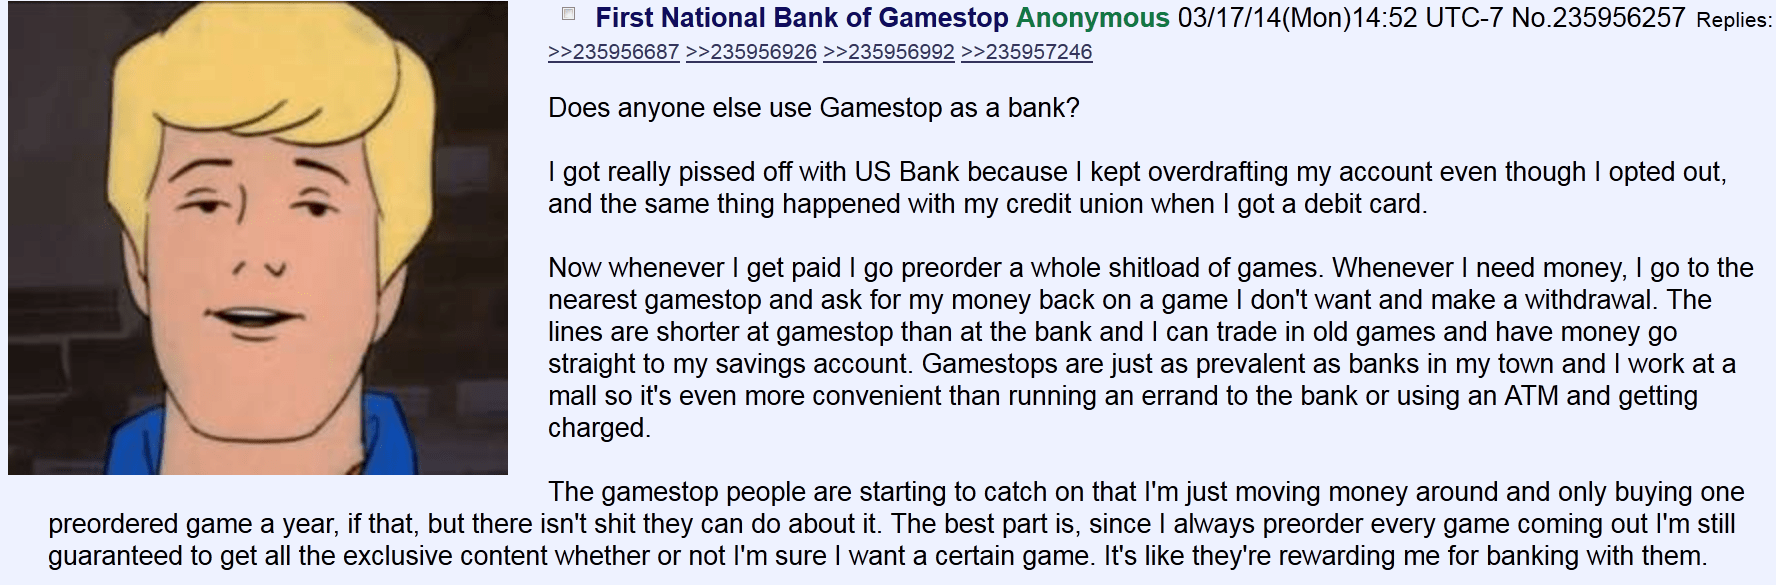 Does anyone else use Gamestop as a bank?      I got really pissed off with US Bank because I kept overdrafting my account even though I opted out, and the same thing happened with my credit union when I got a debit card.      Now whenever I get paid I go preorder a whole shitload of games. Whenever I need money, I go to the nearest gamestop and ask for my money back on a game I don't want and make a withdrawal. The lines are shorter at gamestop than at the bank and I can trade in old games and have money go straight to my savings account. Gamestops are just as prevalent as banks in my town and I work at a mall so it's even more convenient than running an errand to the bank or using an ATM and getting charged.      The gamestop people are starting to catch on that I'm just moving money around and only buying one preordered game a year, if that, but there isn't shit they can do about it. The best part is, since I always preorder every game coming out I'm still guaranteed to get all the exclusive content whether or not I'm sure I want a certain game. It's like they're rewarding me for banking with them.